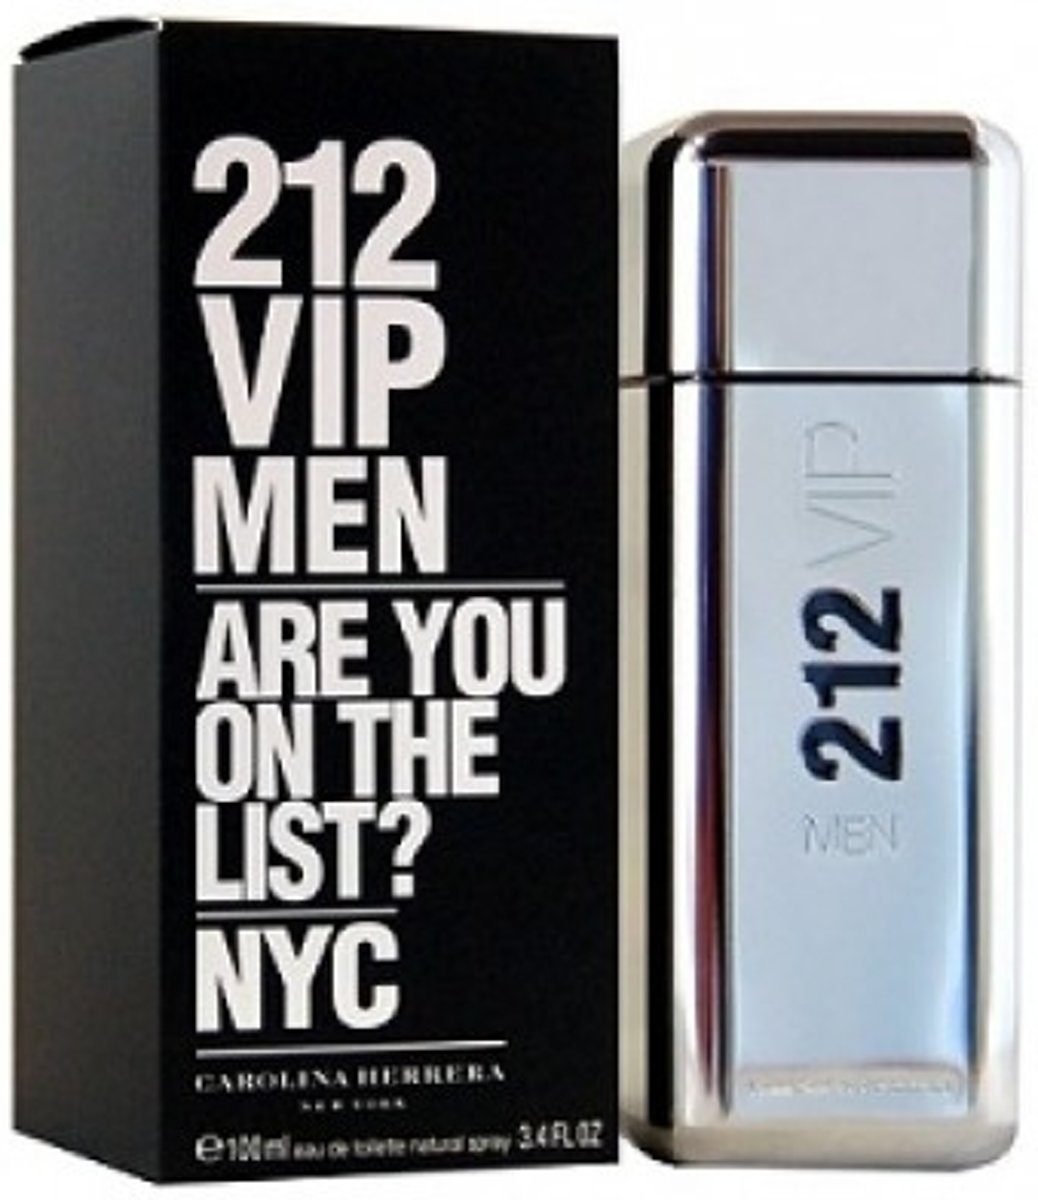 Carolina Herrera - Eau de toilette - 212 VIP men - 50 ml